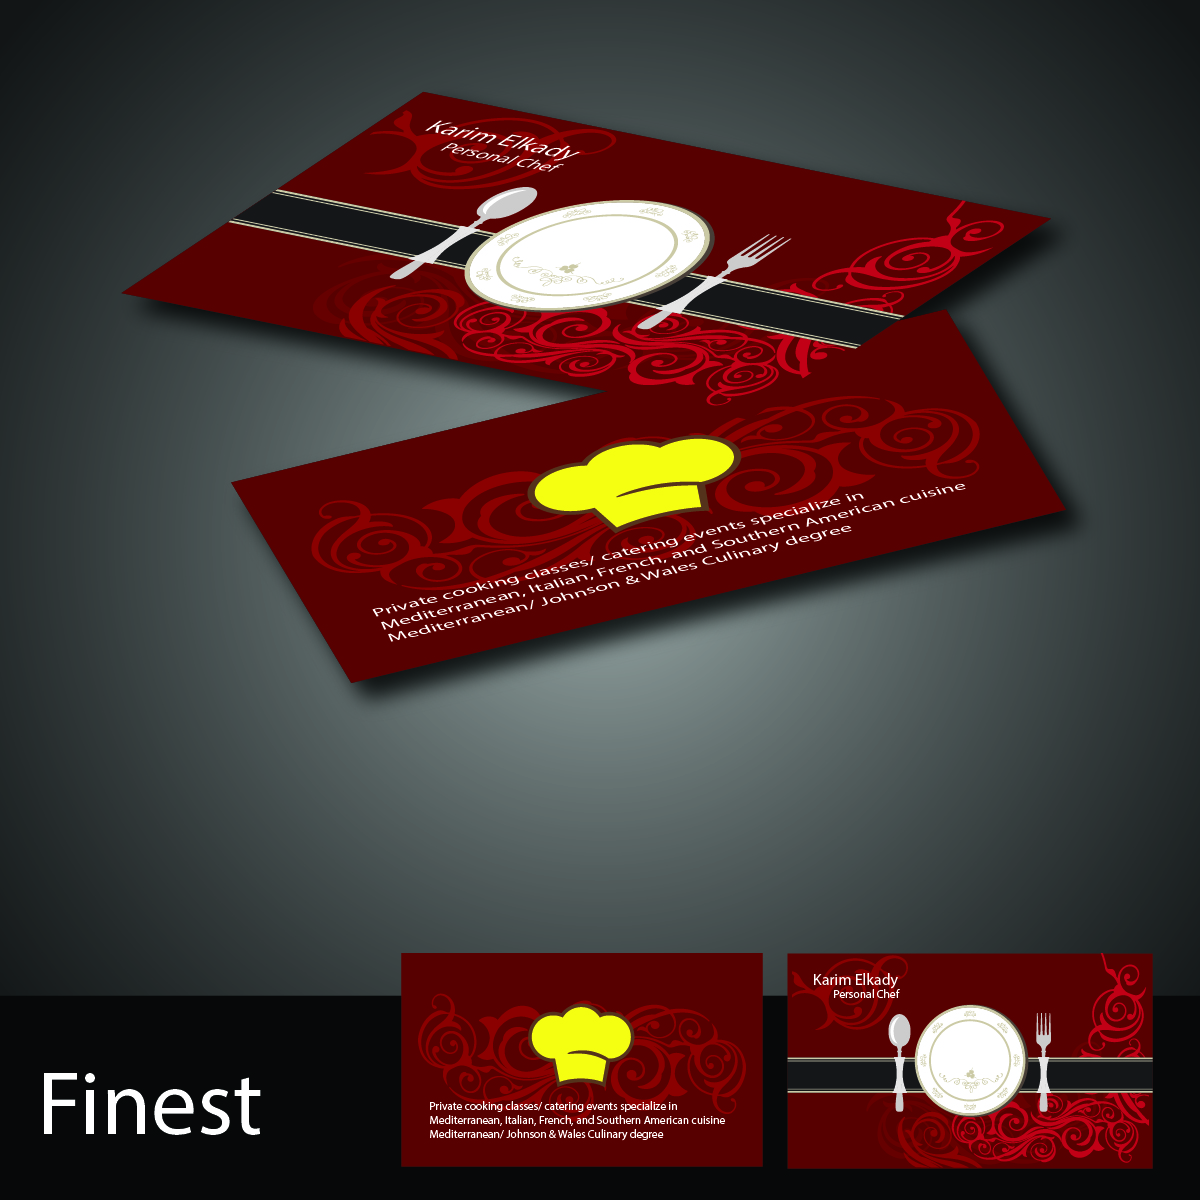 Elegant playful business business card design for personal chef by business card design by finest for personal chef design 7854109 colourmoves